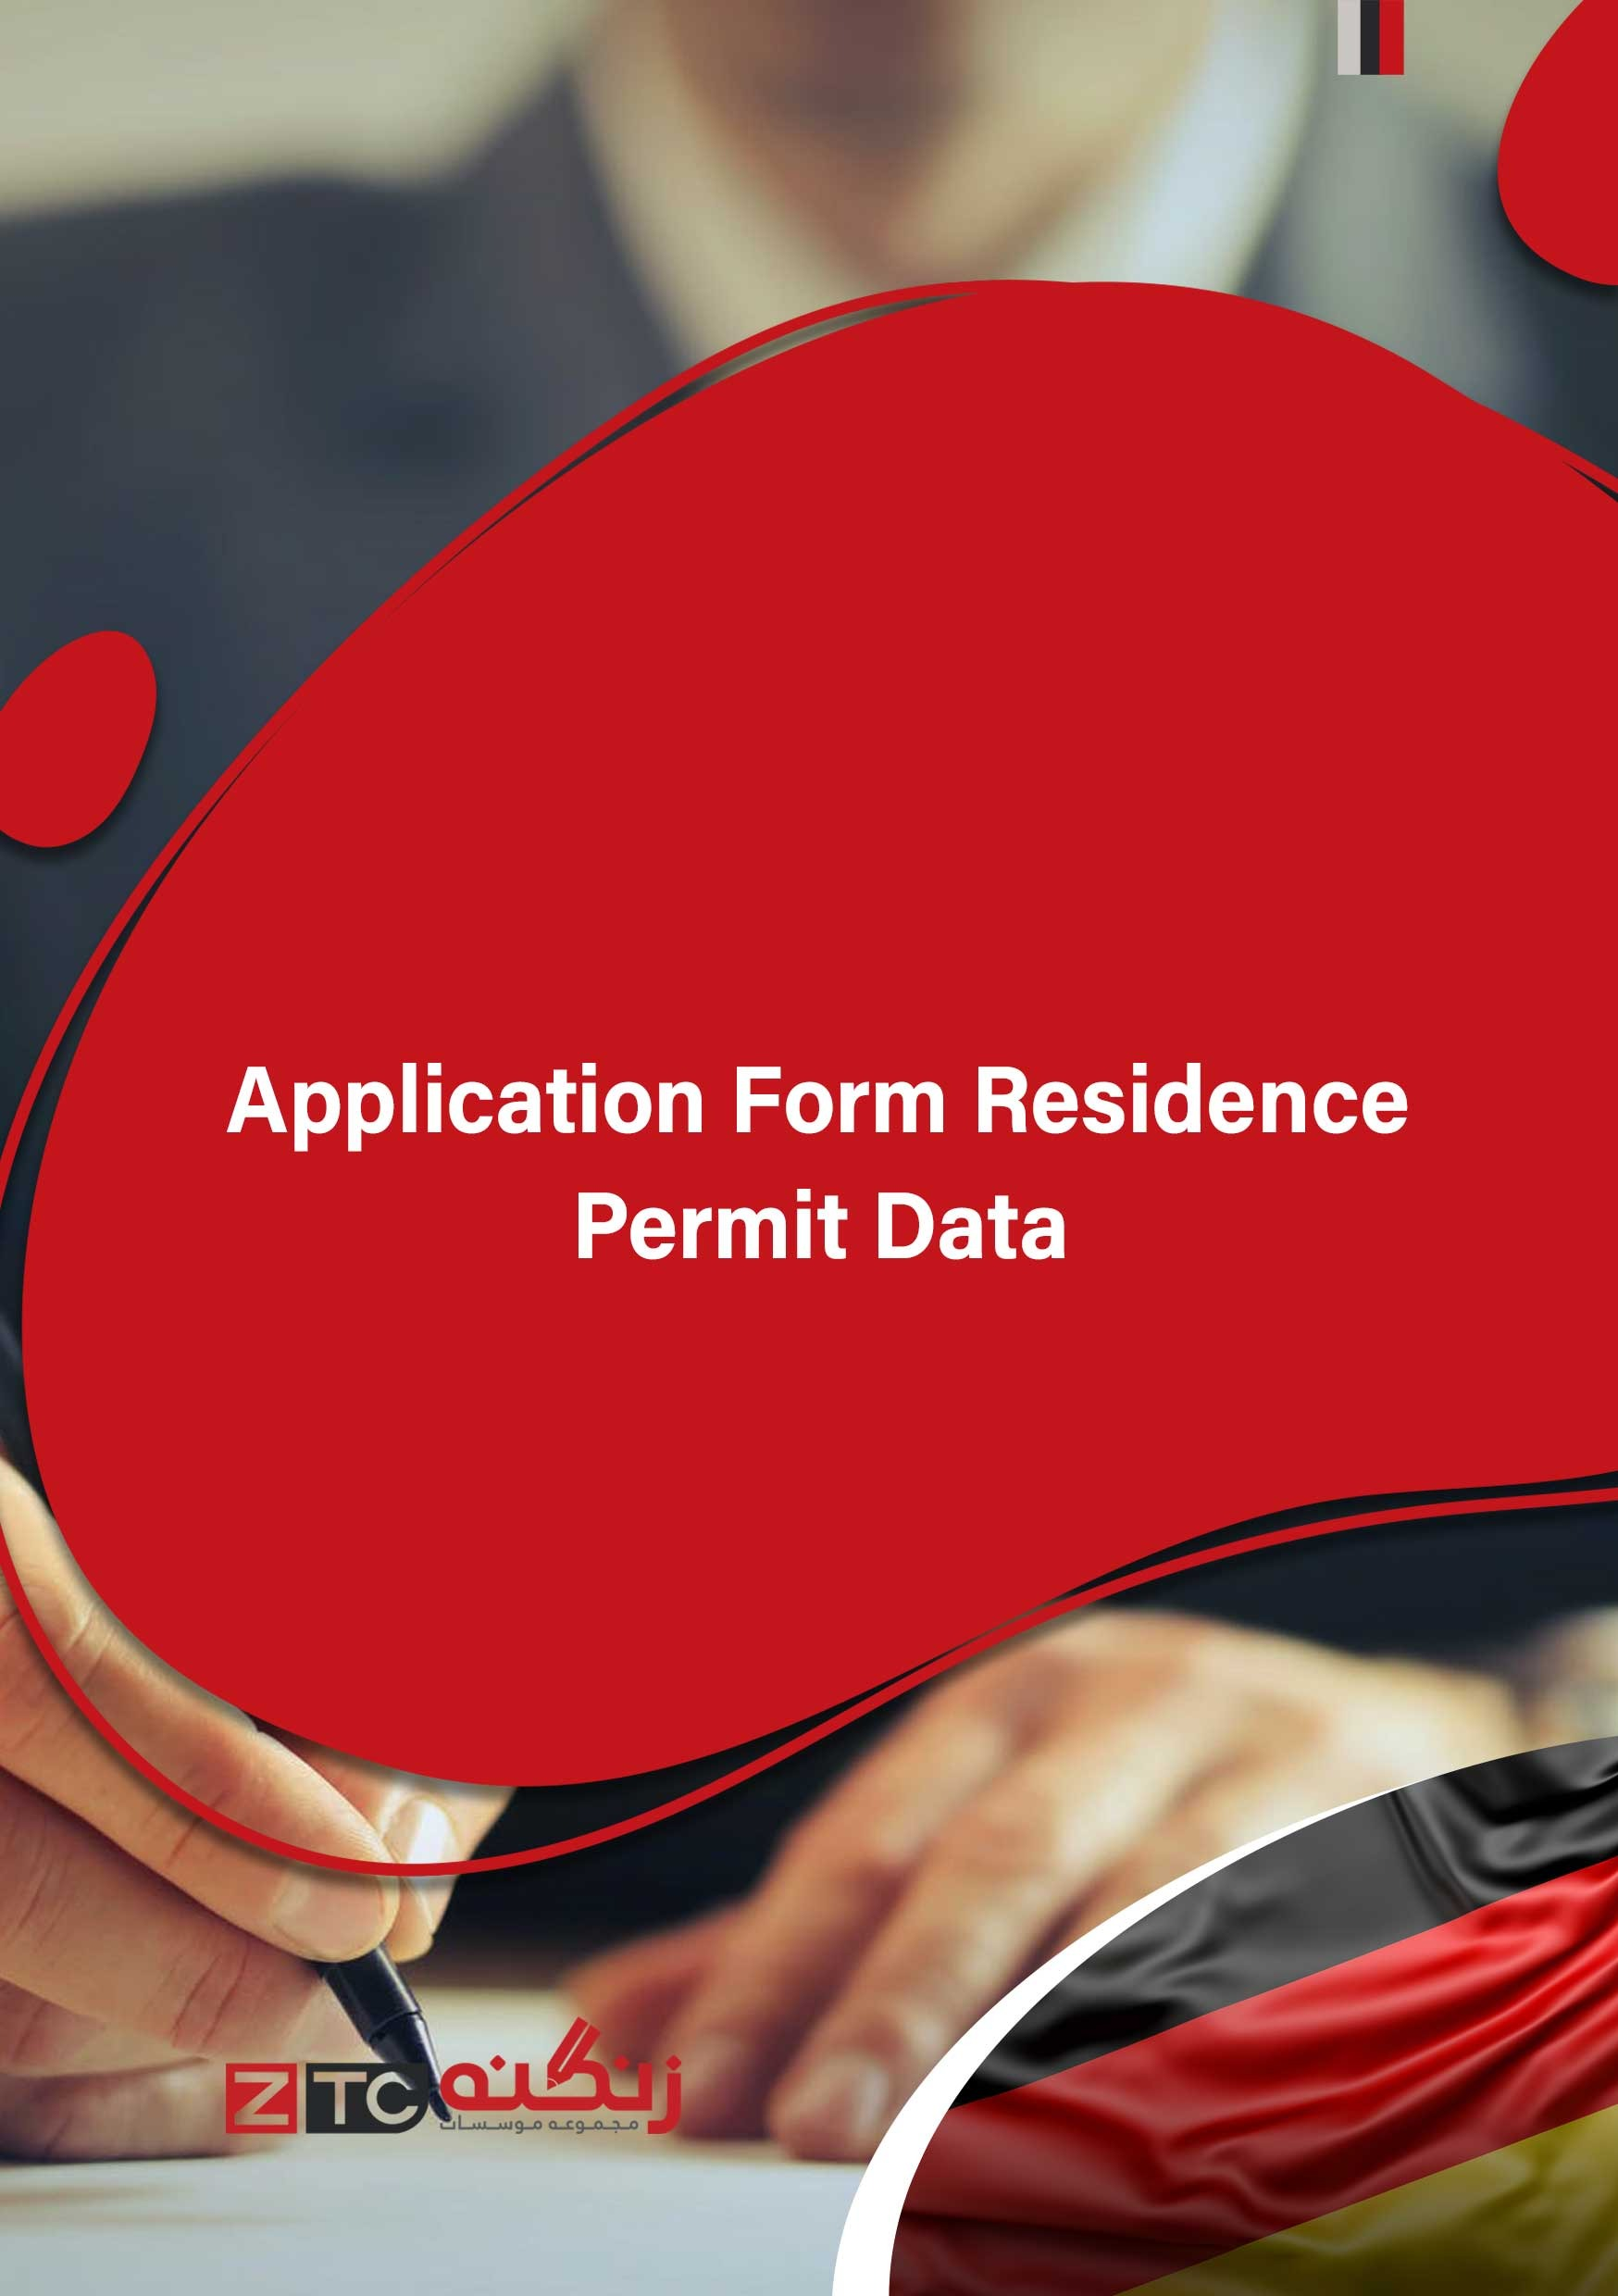 Application Form Residence Permit Data